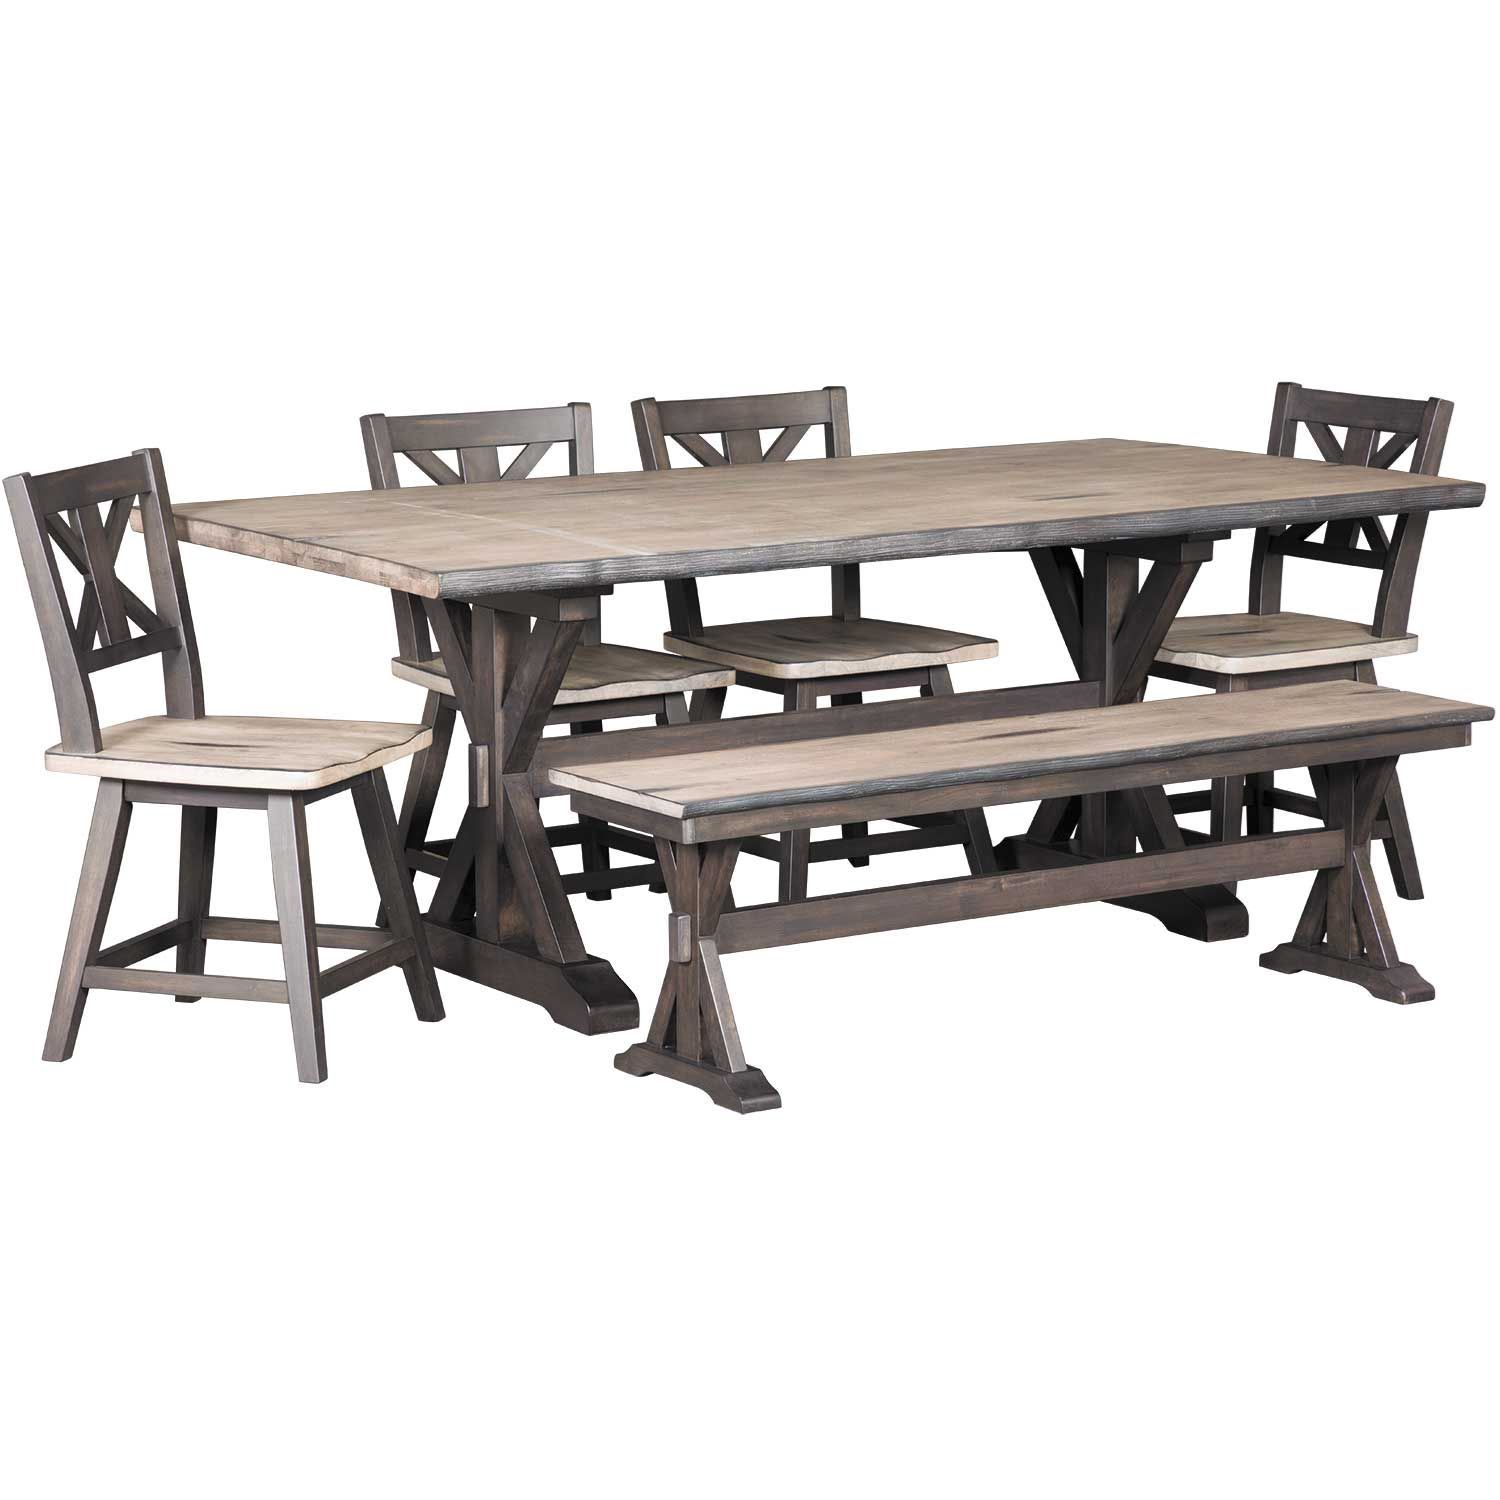 Awesome Picture Of Urban Farmhouse 6 Piece Dining Set